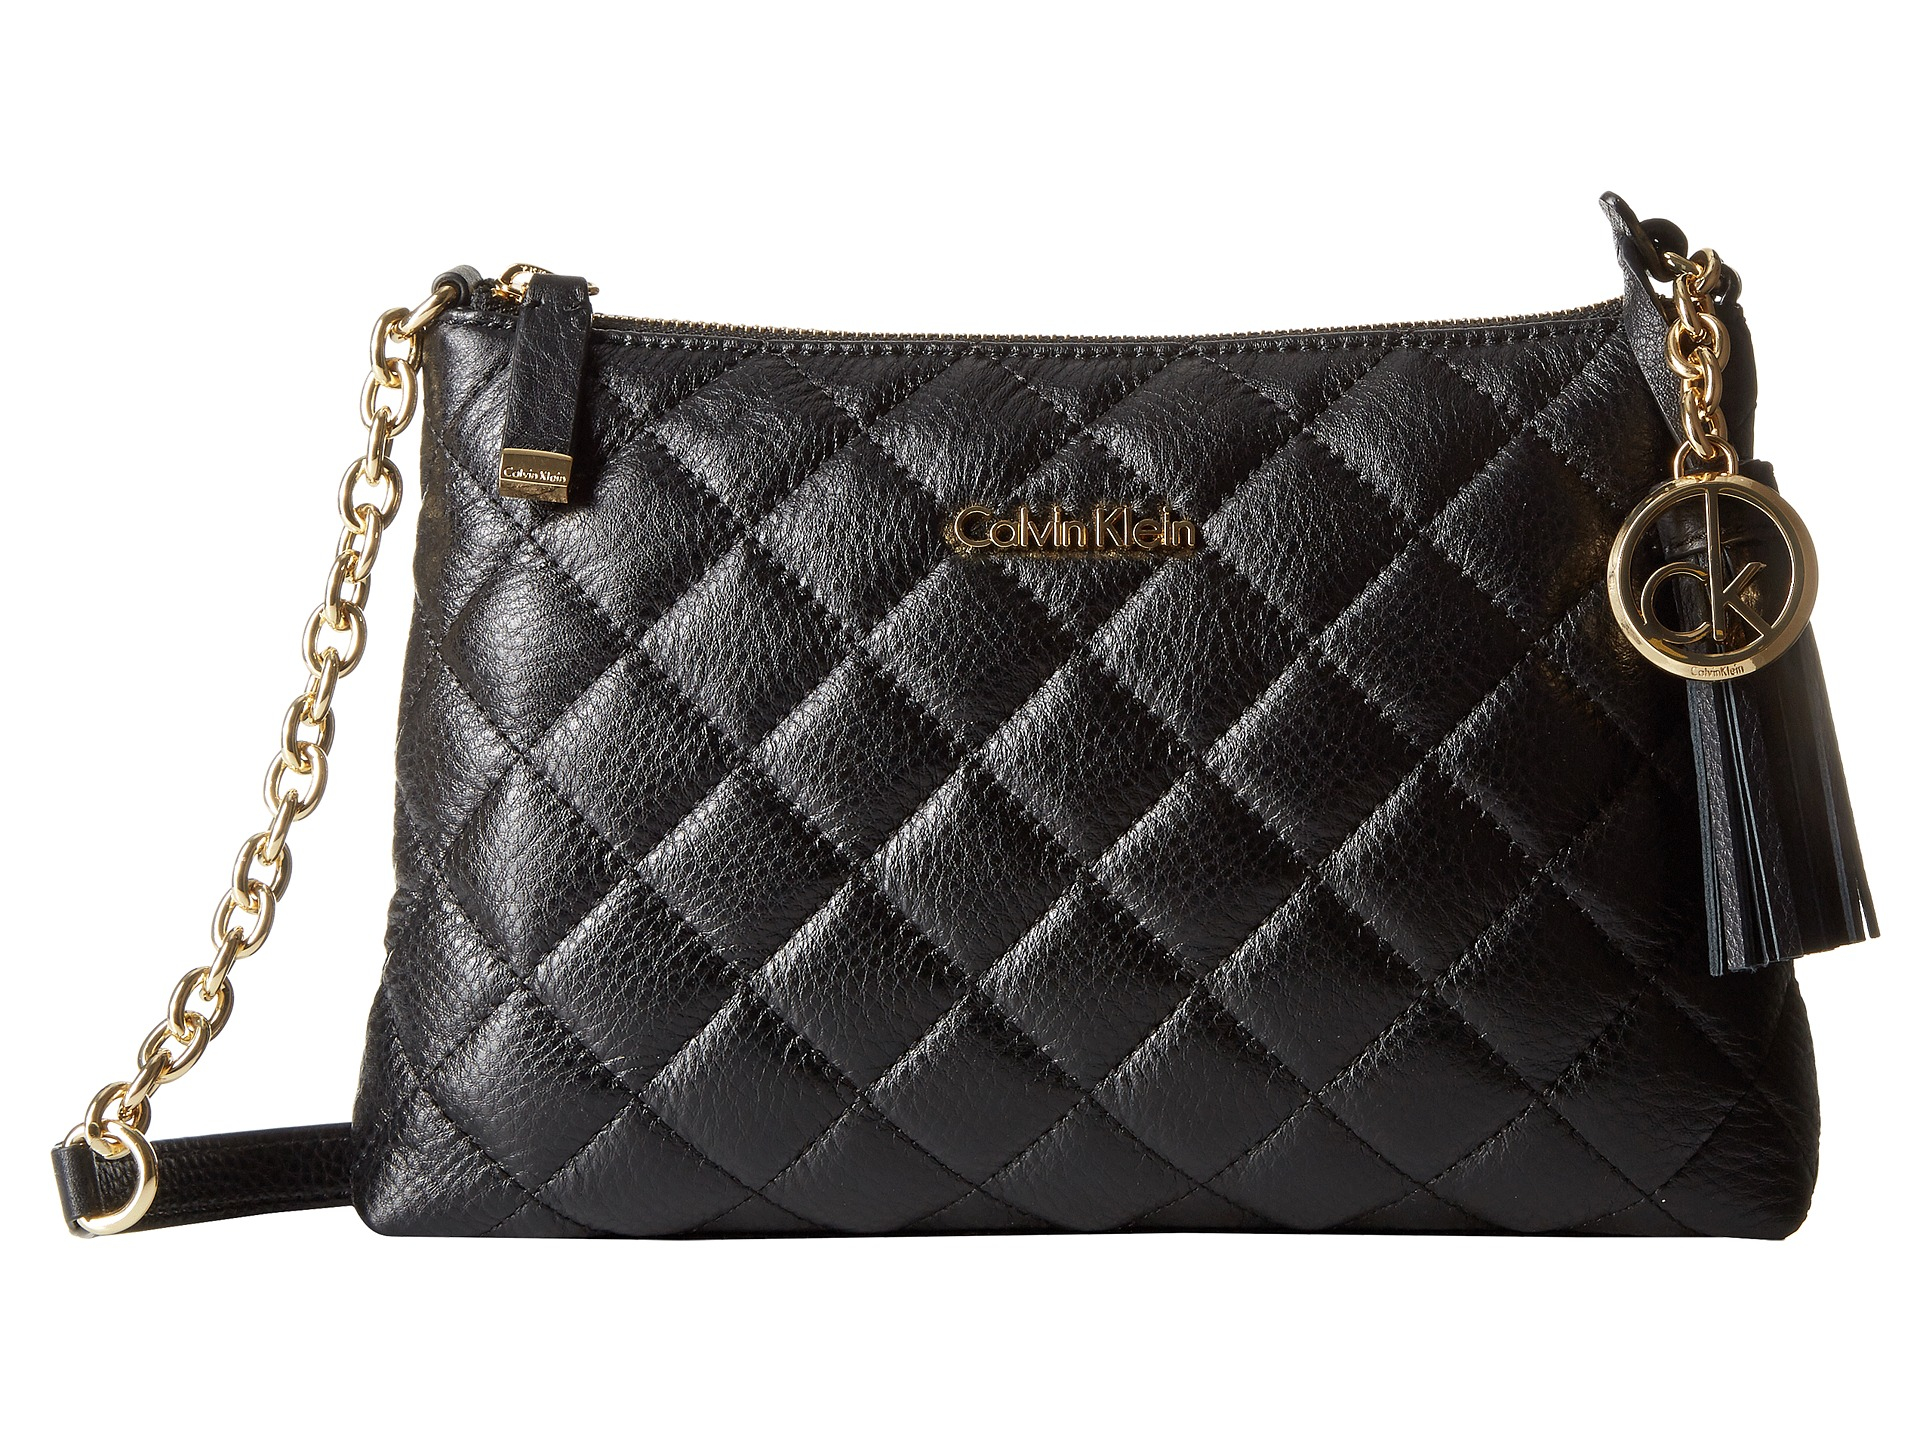 Lyst - Calvin klein Quilted Pebble Leather Tassel Crossbody in Black : calvin klein quilted leather crossbody bag - Adamdwight.com